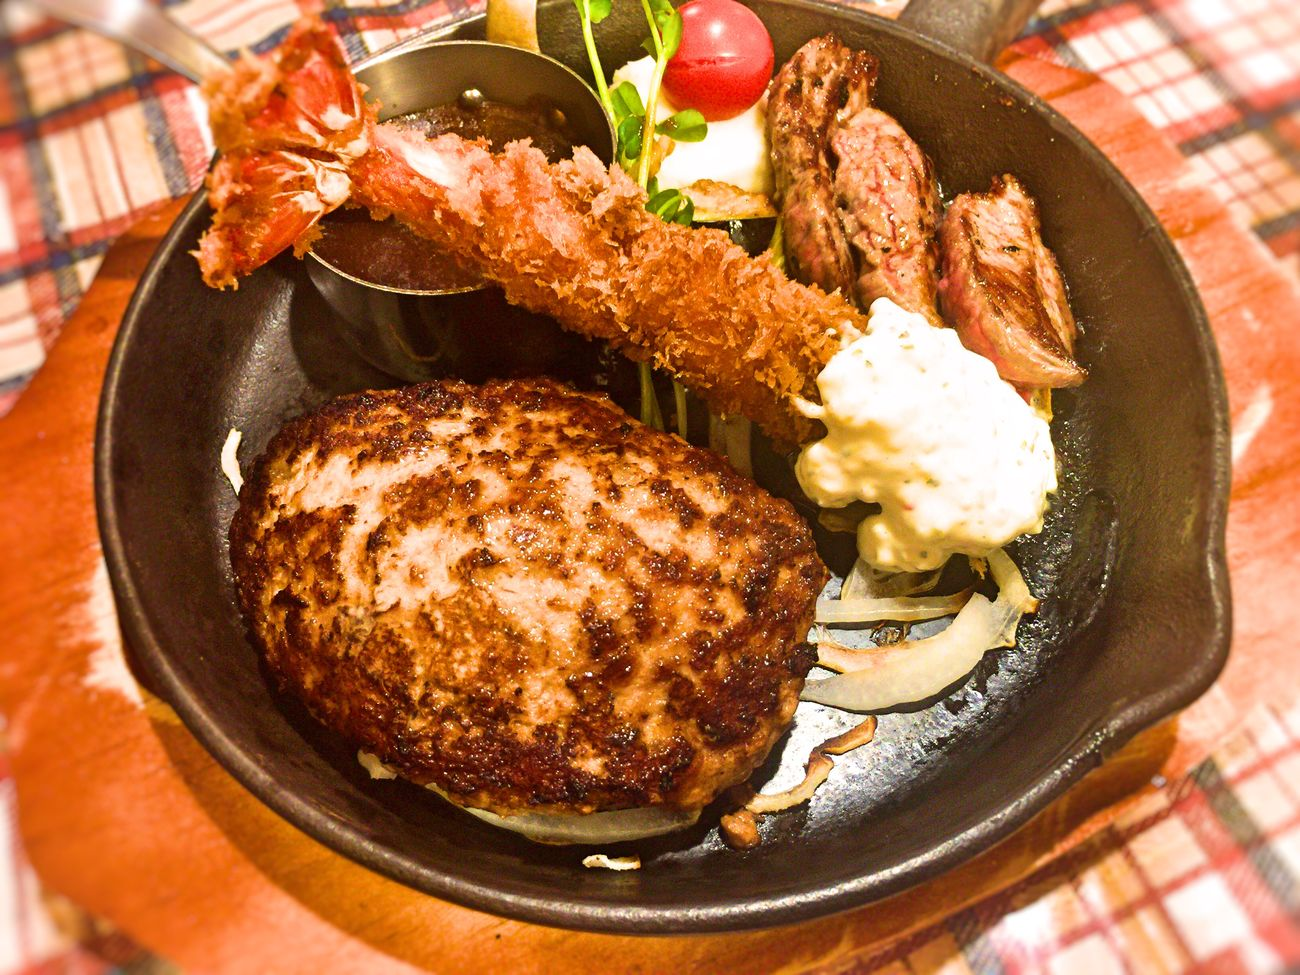 I went for shopping with parents and ate out today!It is a fried prawn, a steak and a ground beef steak together! Its time was very very happy and delicious! Dish Dishes Food Fried Prawns Fried Shrimp Hamburg Steak Meal Meat No People Ready-to-eat Serving Size Steak Steak Dinner